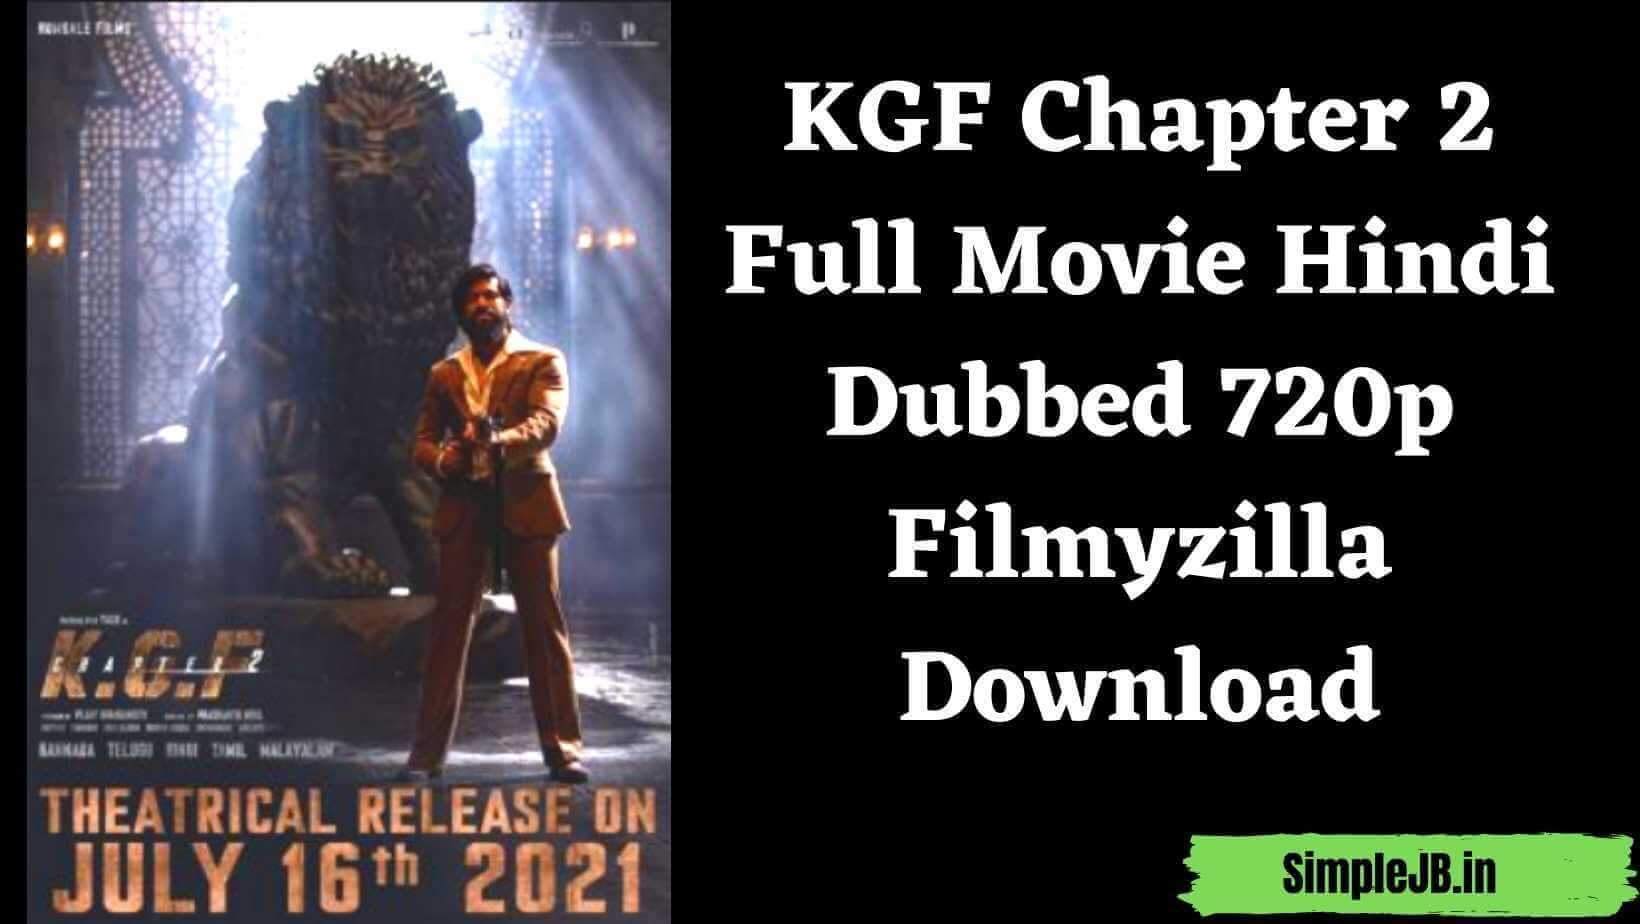 KGF Chapter 2 Full Movie Hindi Dubbed 720p Filmyzilla Download